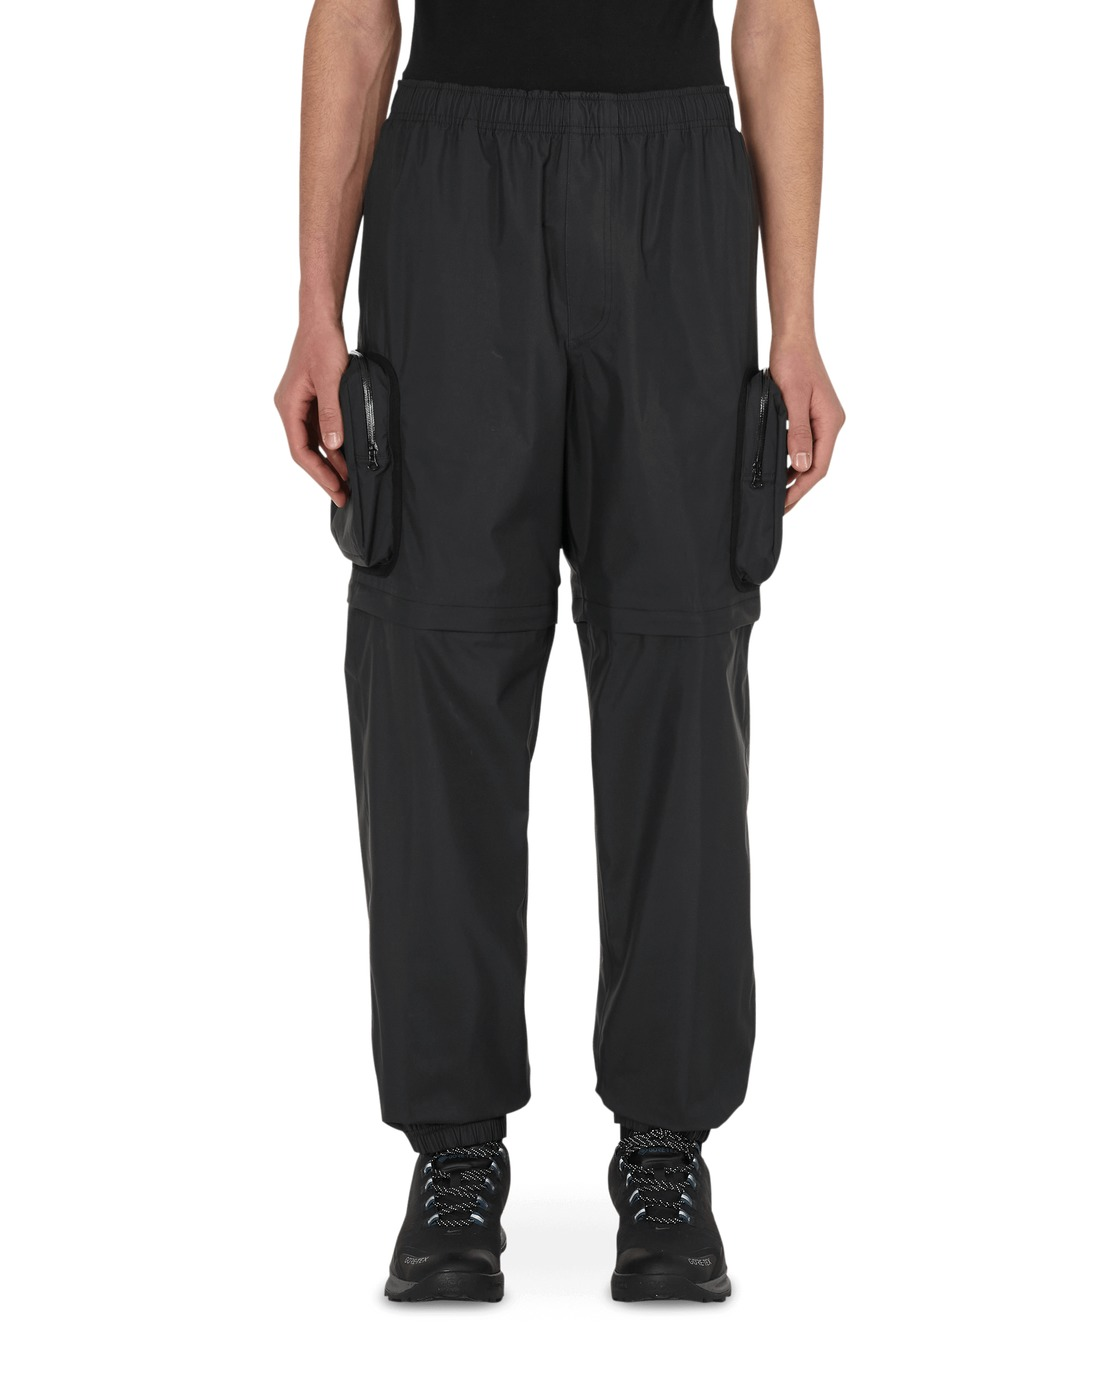 Nike Special Project Undercover 2 In 1 Pants Black